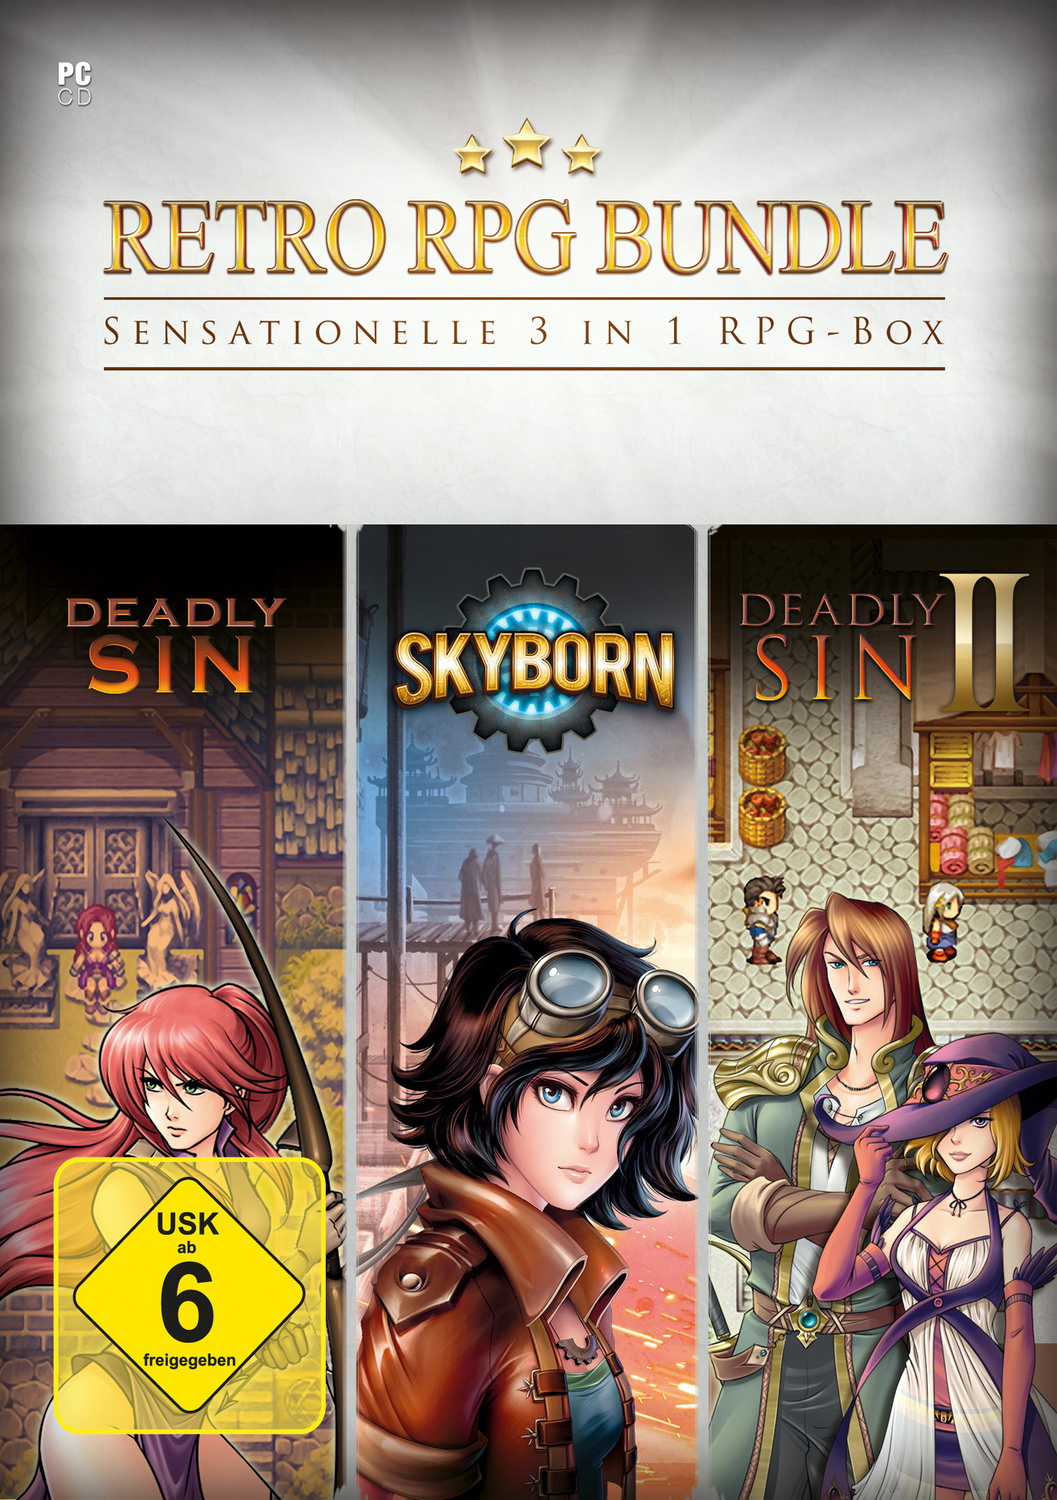 Retro RPG Bundle - 3 in 1 RPG Box (PC)